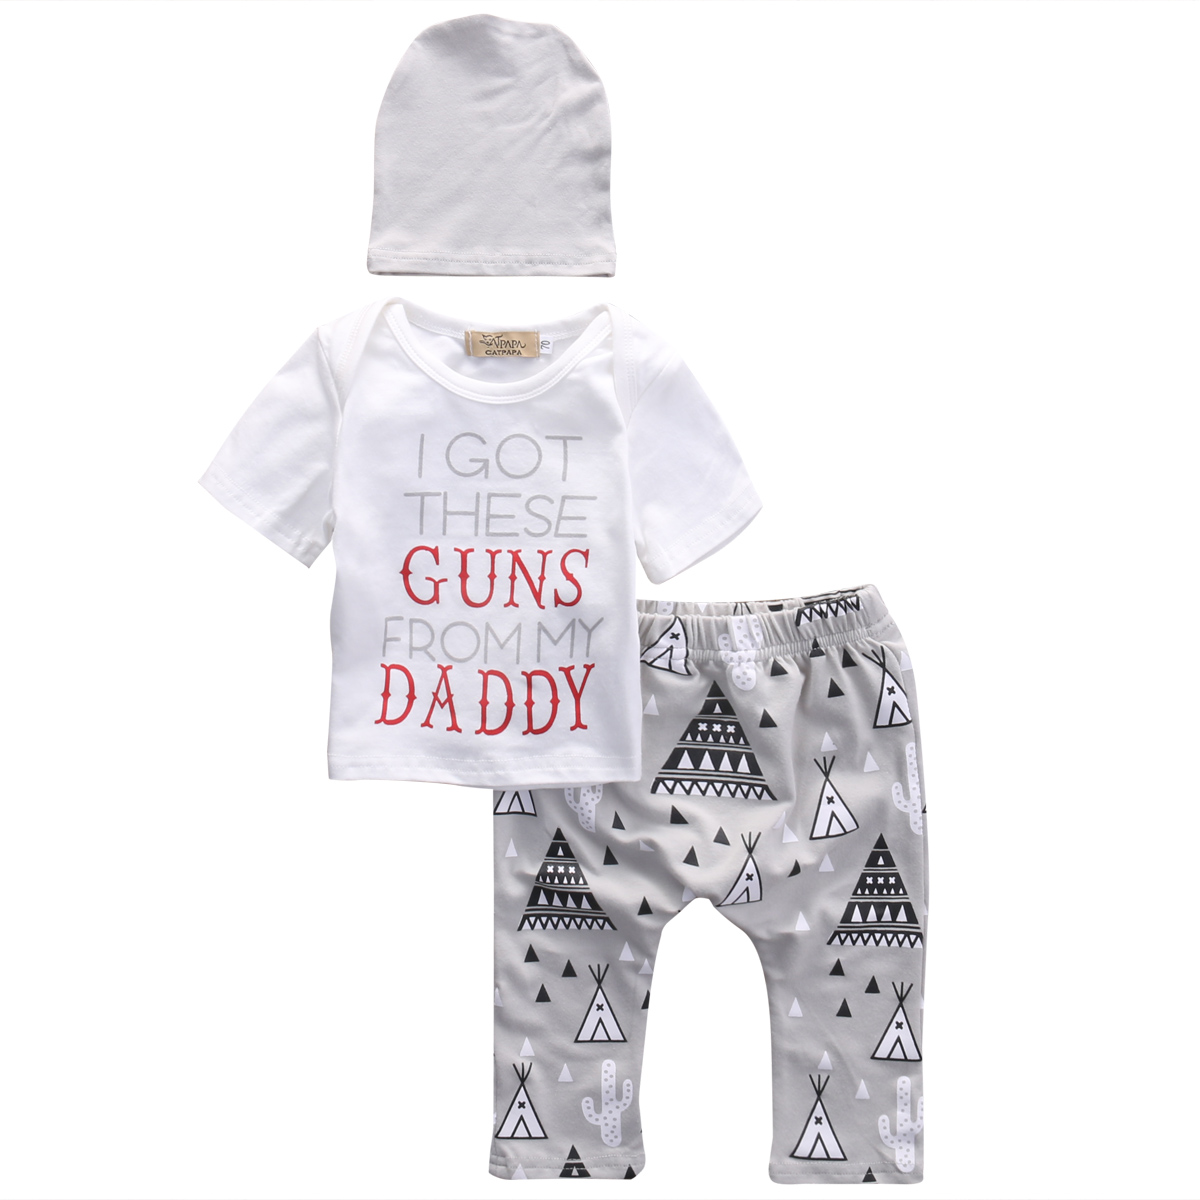 3 Pcs Clothing Set Newborn Babies Toddler Baby Boys Girls T-shirt Tops+Long Pants+Hat Clothes Set cotton baby rompers set newborn clothes baby clothing boys girls cartoon jumpsuits long sleeve overalls coveralls autumn winter